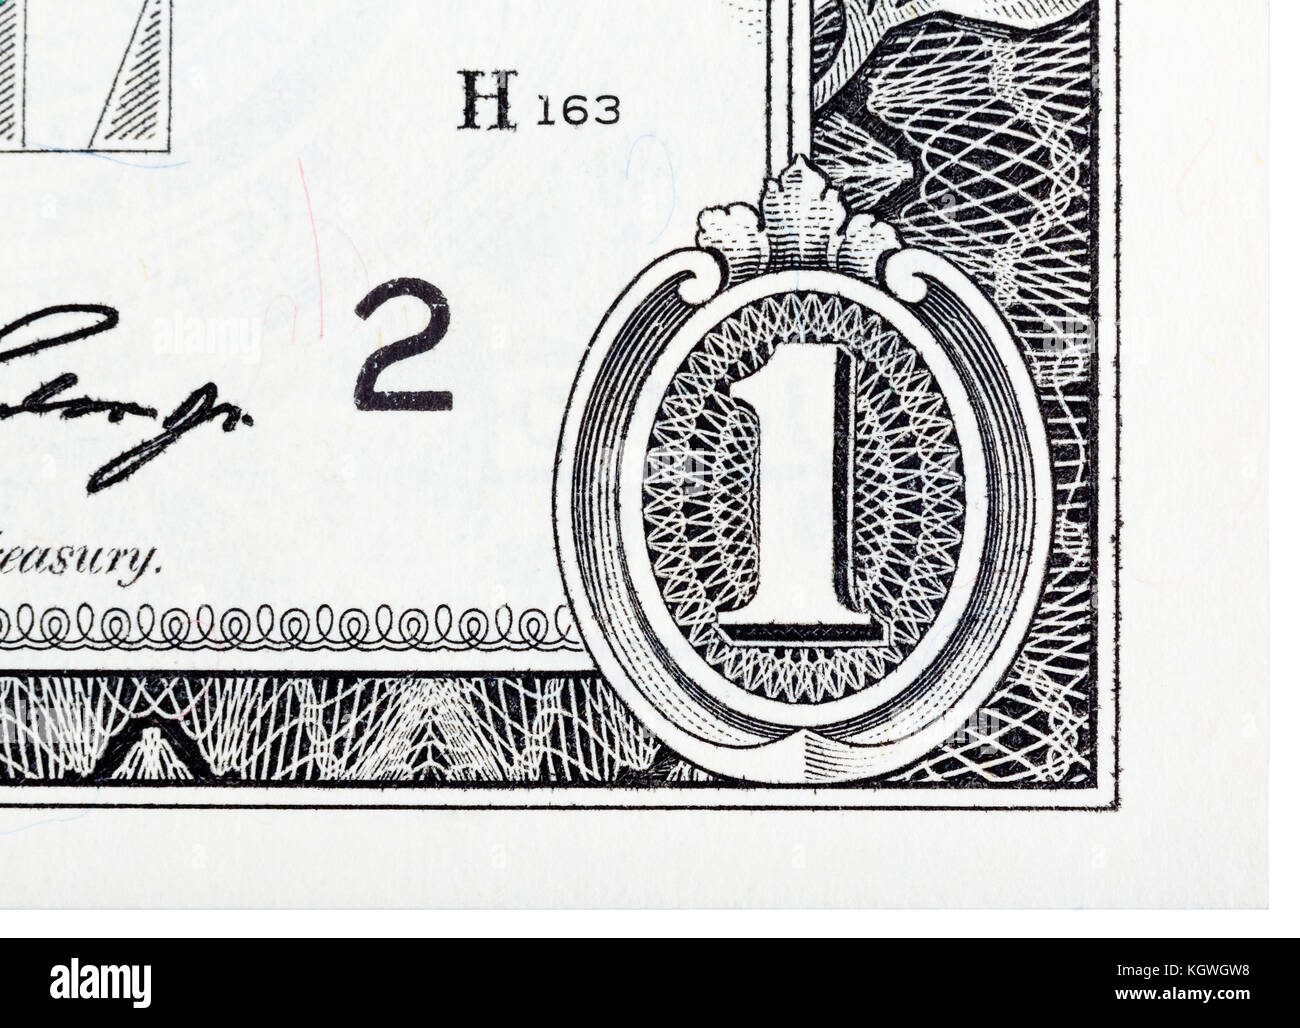 Detailed element based on a one dollar bill. - Stock Image